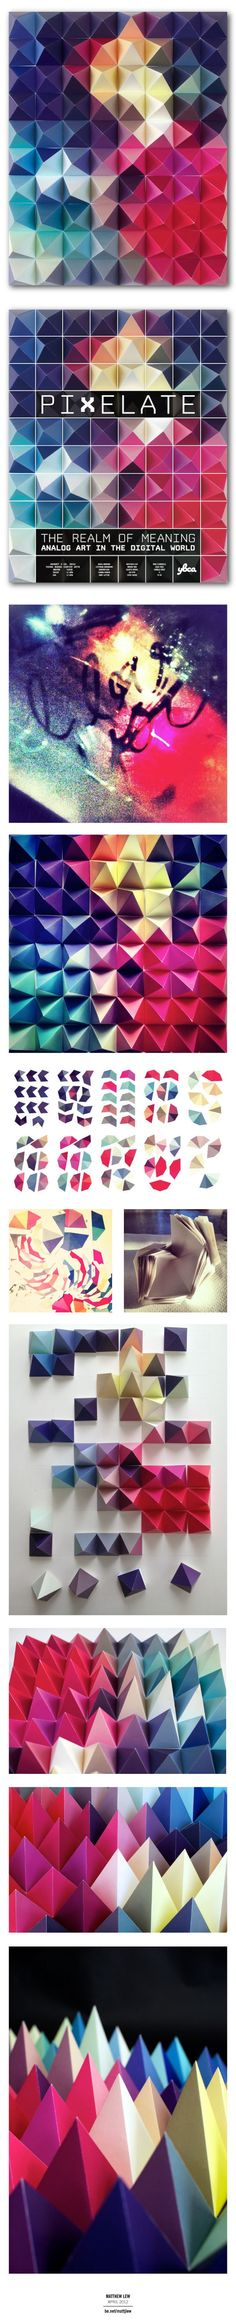 Pixelate - The Realm Of Meaning by Matthew Lew, via Behance